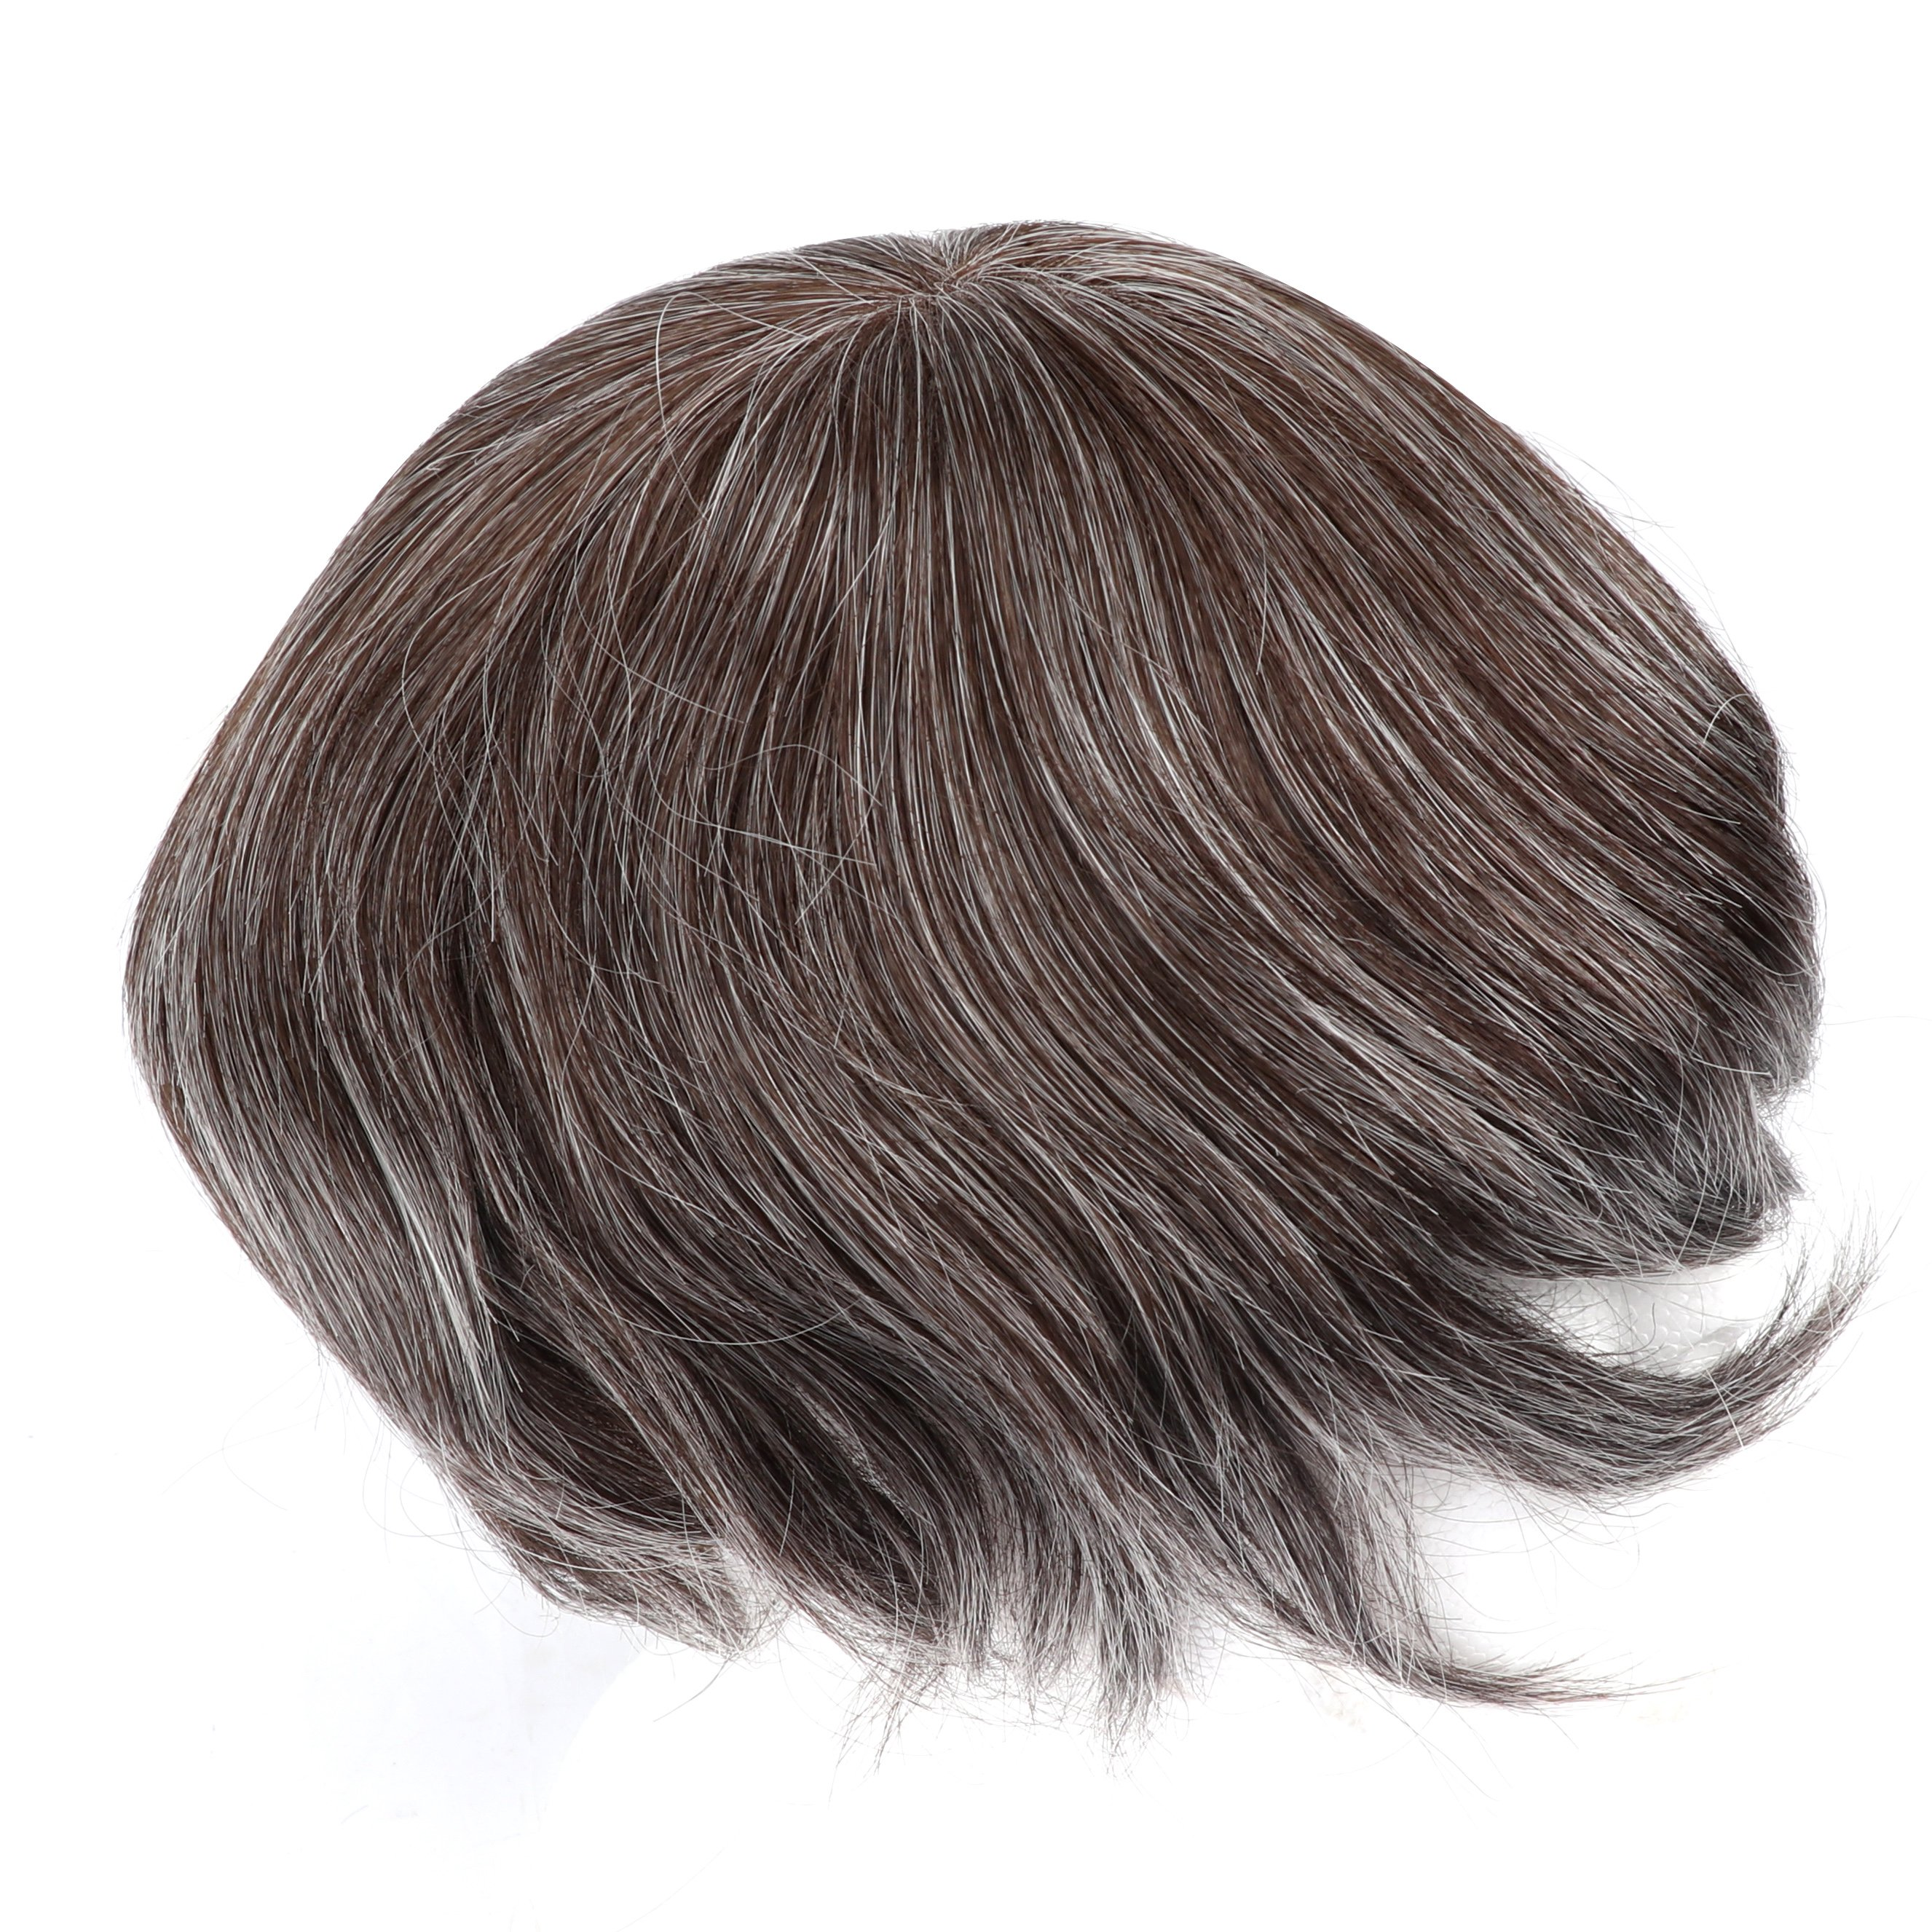 Mens Toupee Hairpiece Apollo Human Hair Systems 340#